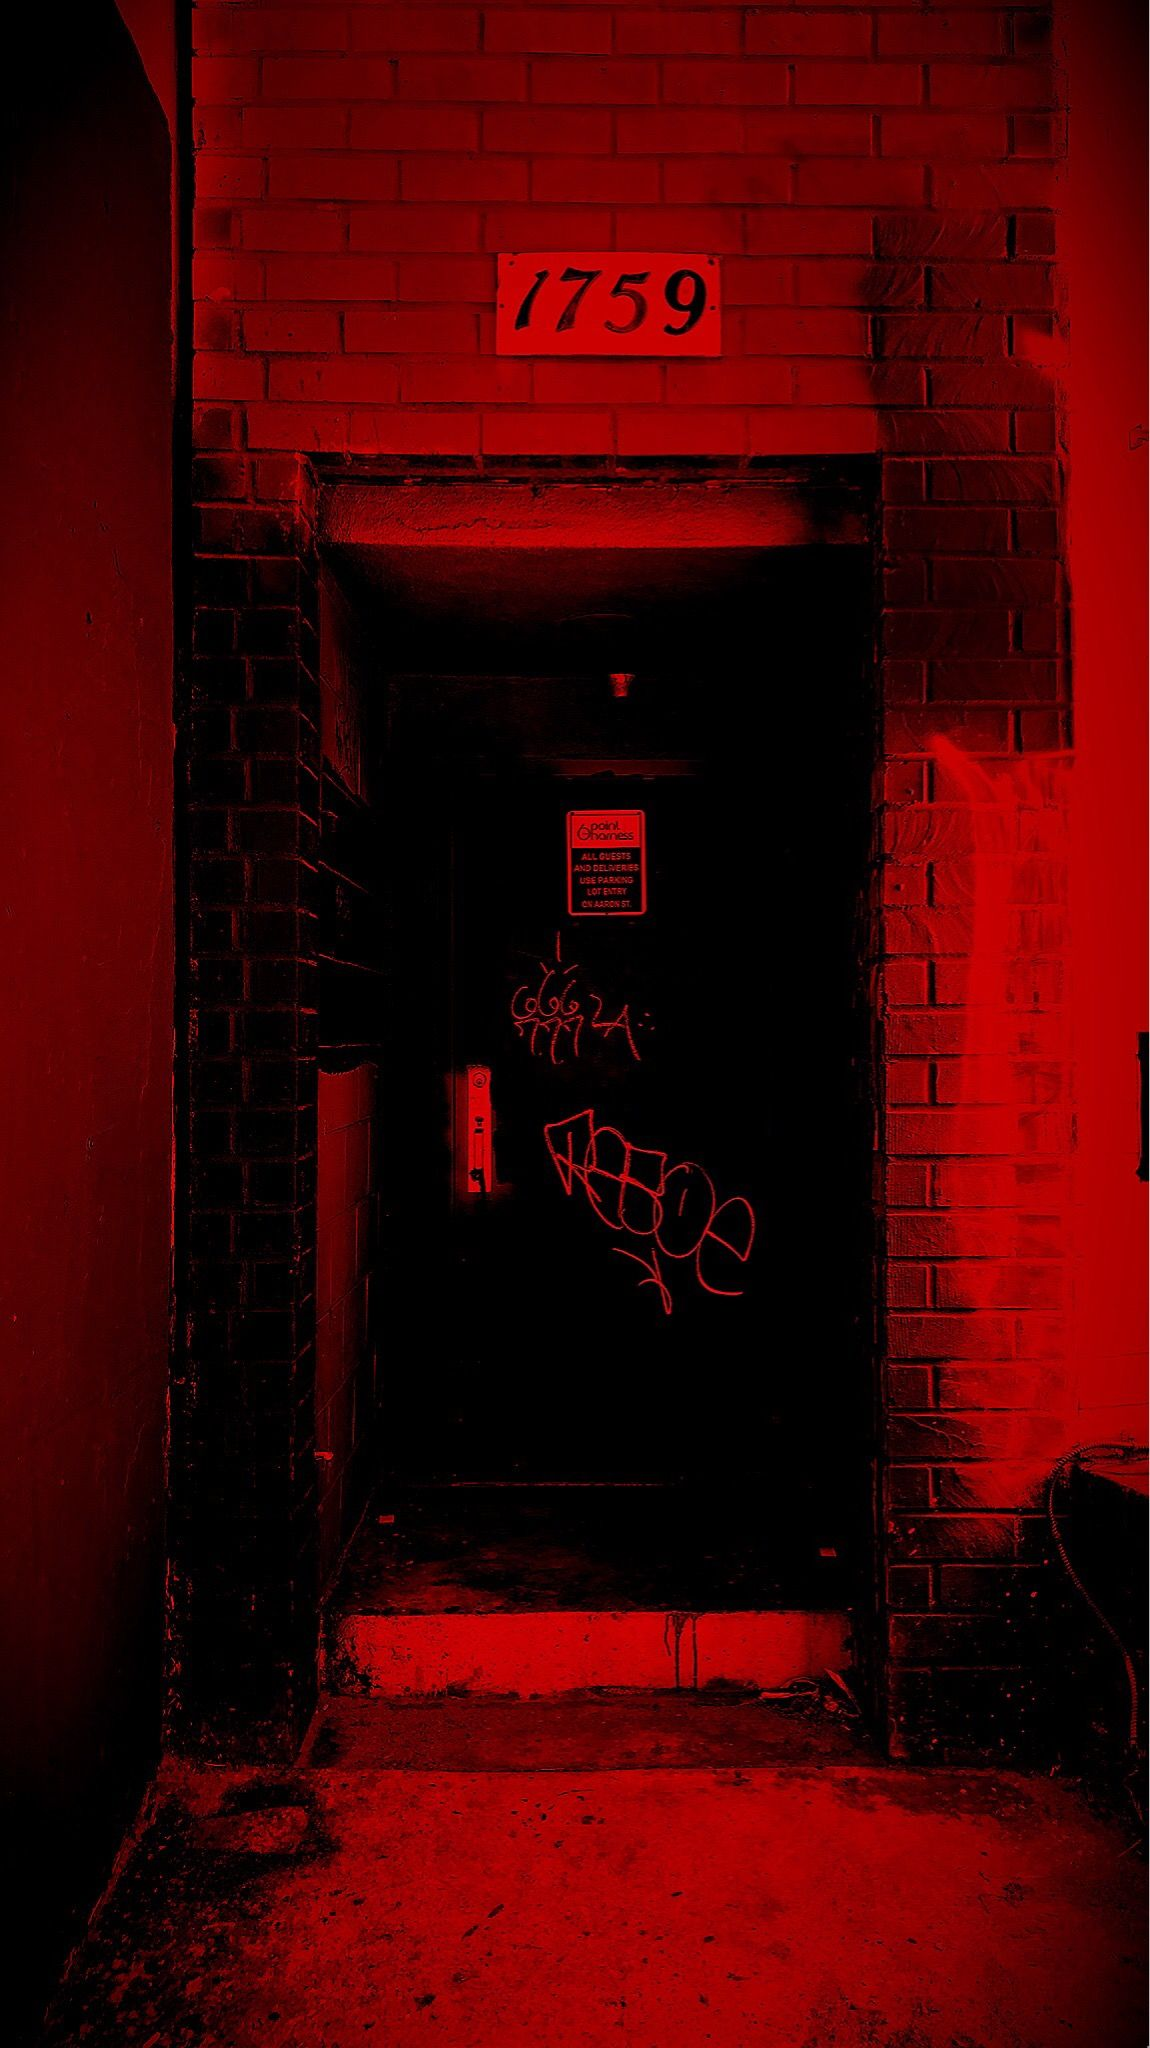 𝐩𝐢𝐧— 𝐯𝐢𝐯𝐚𝐥𝐚𝐡𝐚𝐫𝐥𝐞𝐲𝐪 Red aesthetic, Aesthetic colors, Red